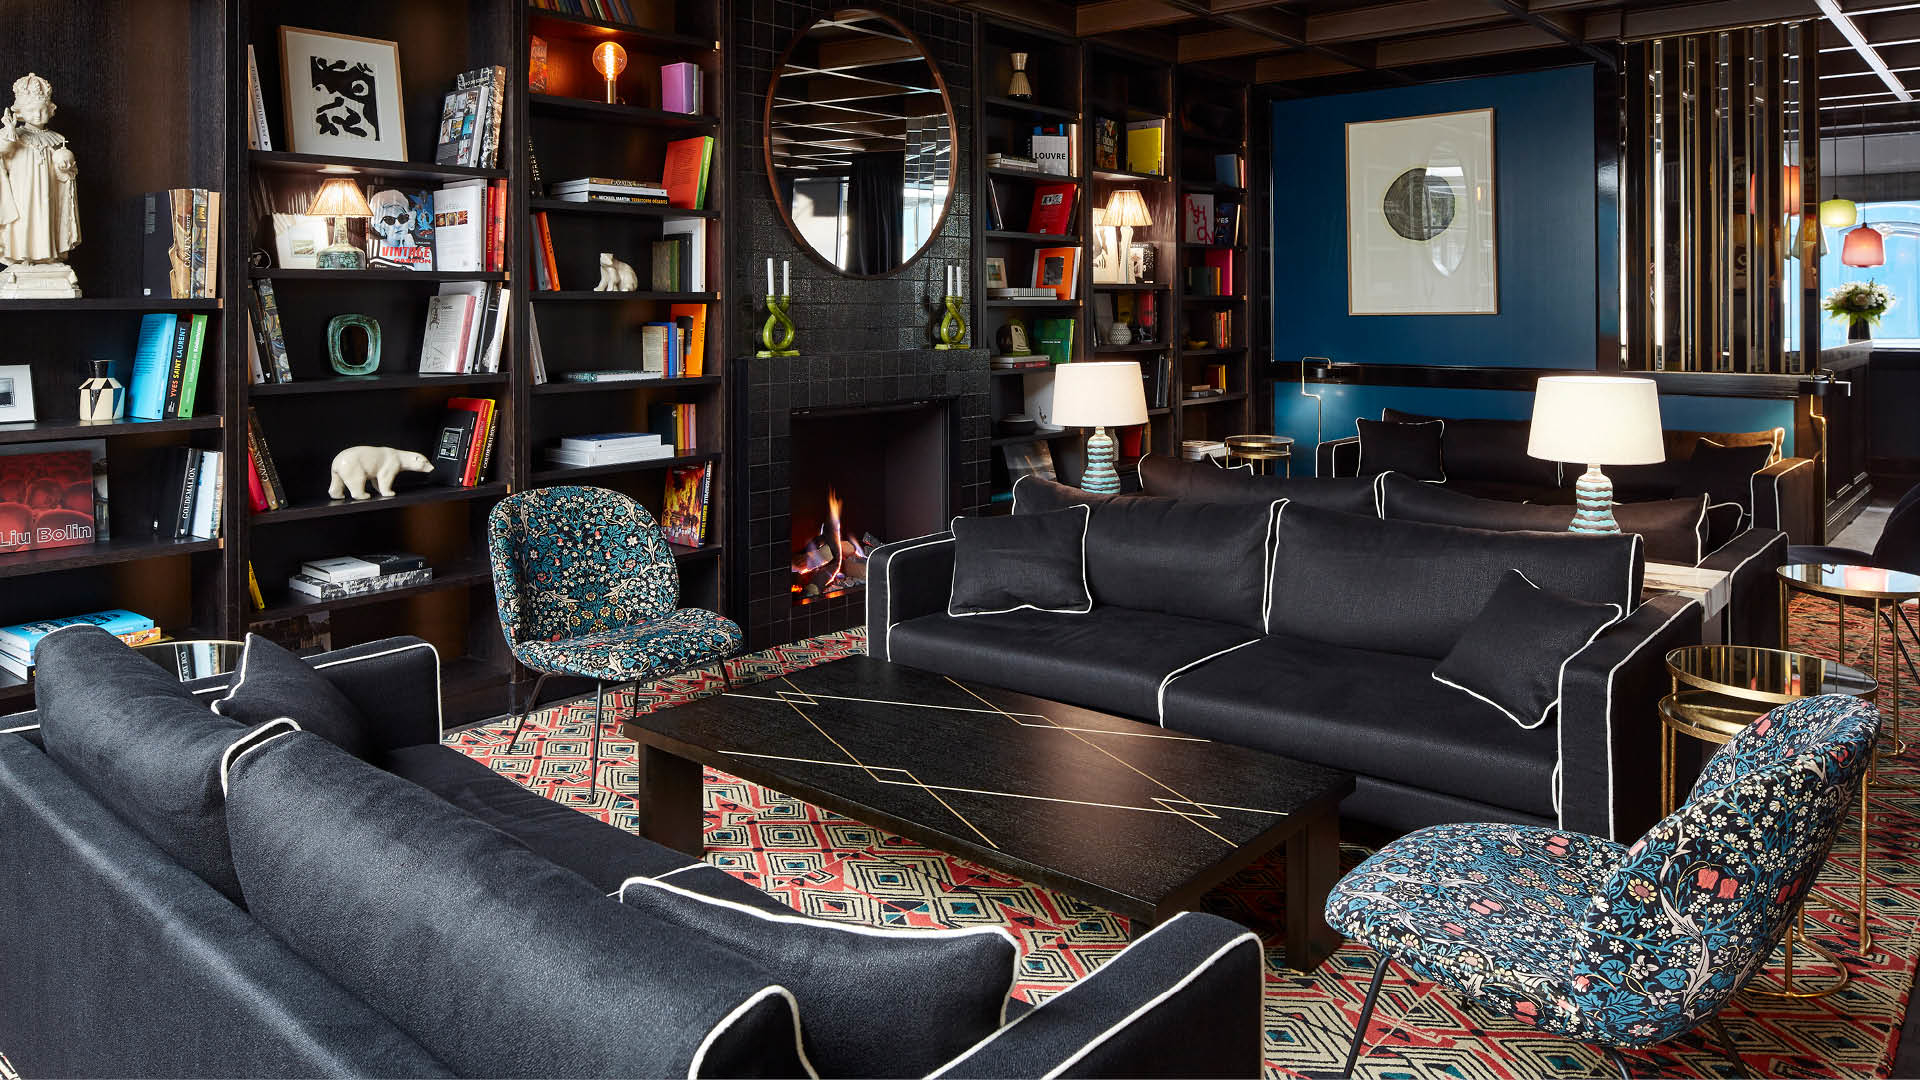 Review: A Visit To Le Roch Hotel & Spa In Paris